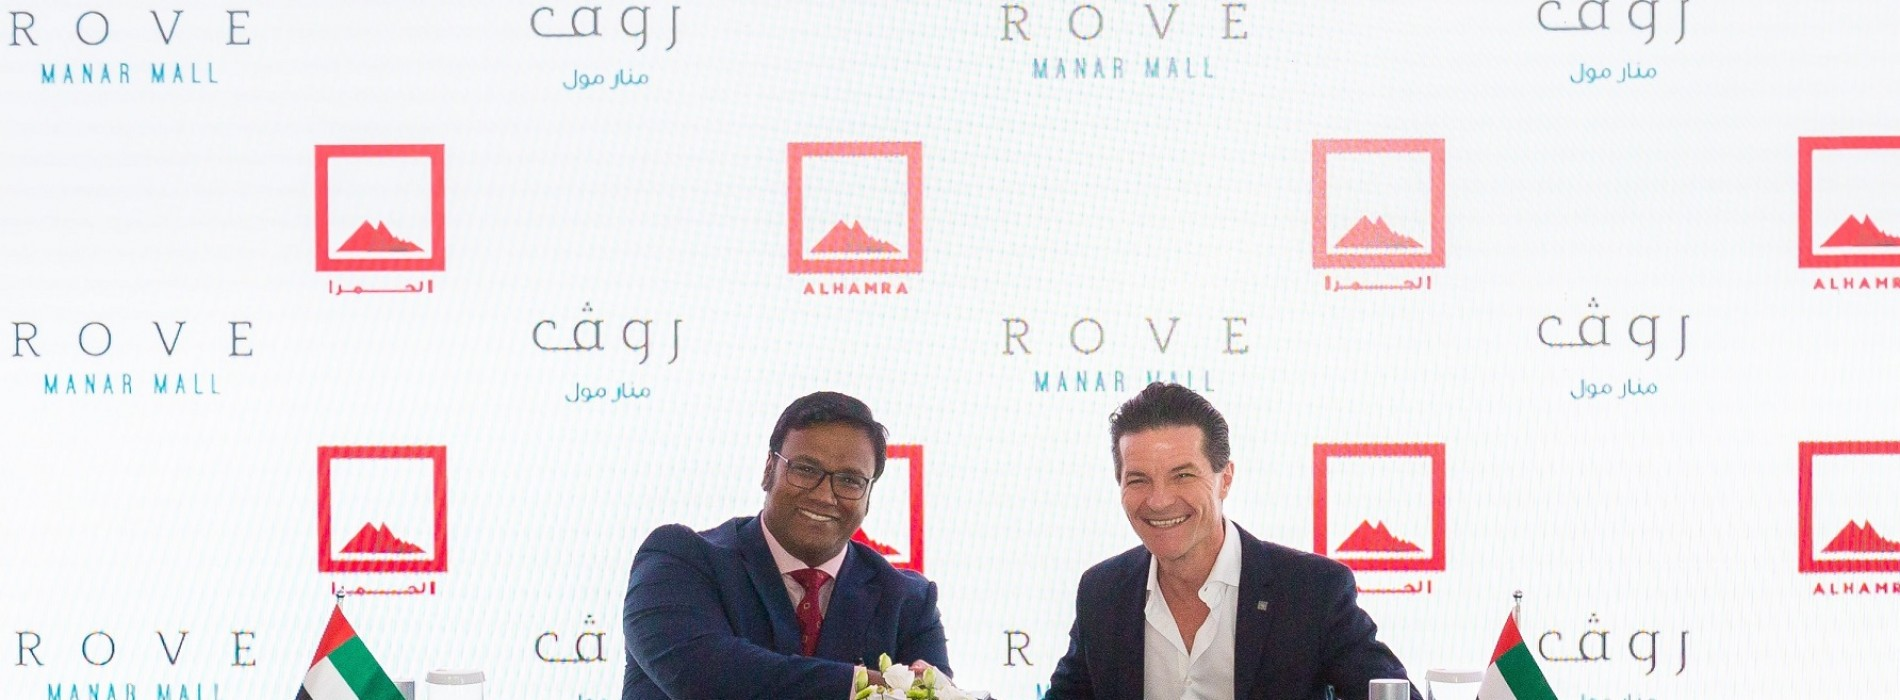 Rove Hotels signs agreement with Al Hamra for 250-room Rove Manar Mall hotel